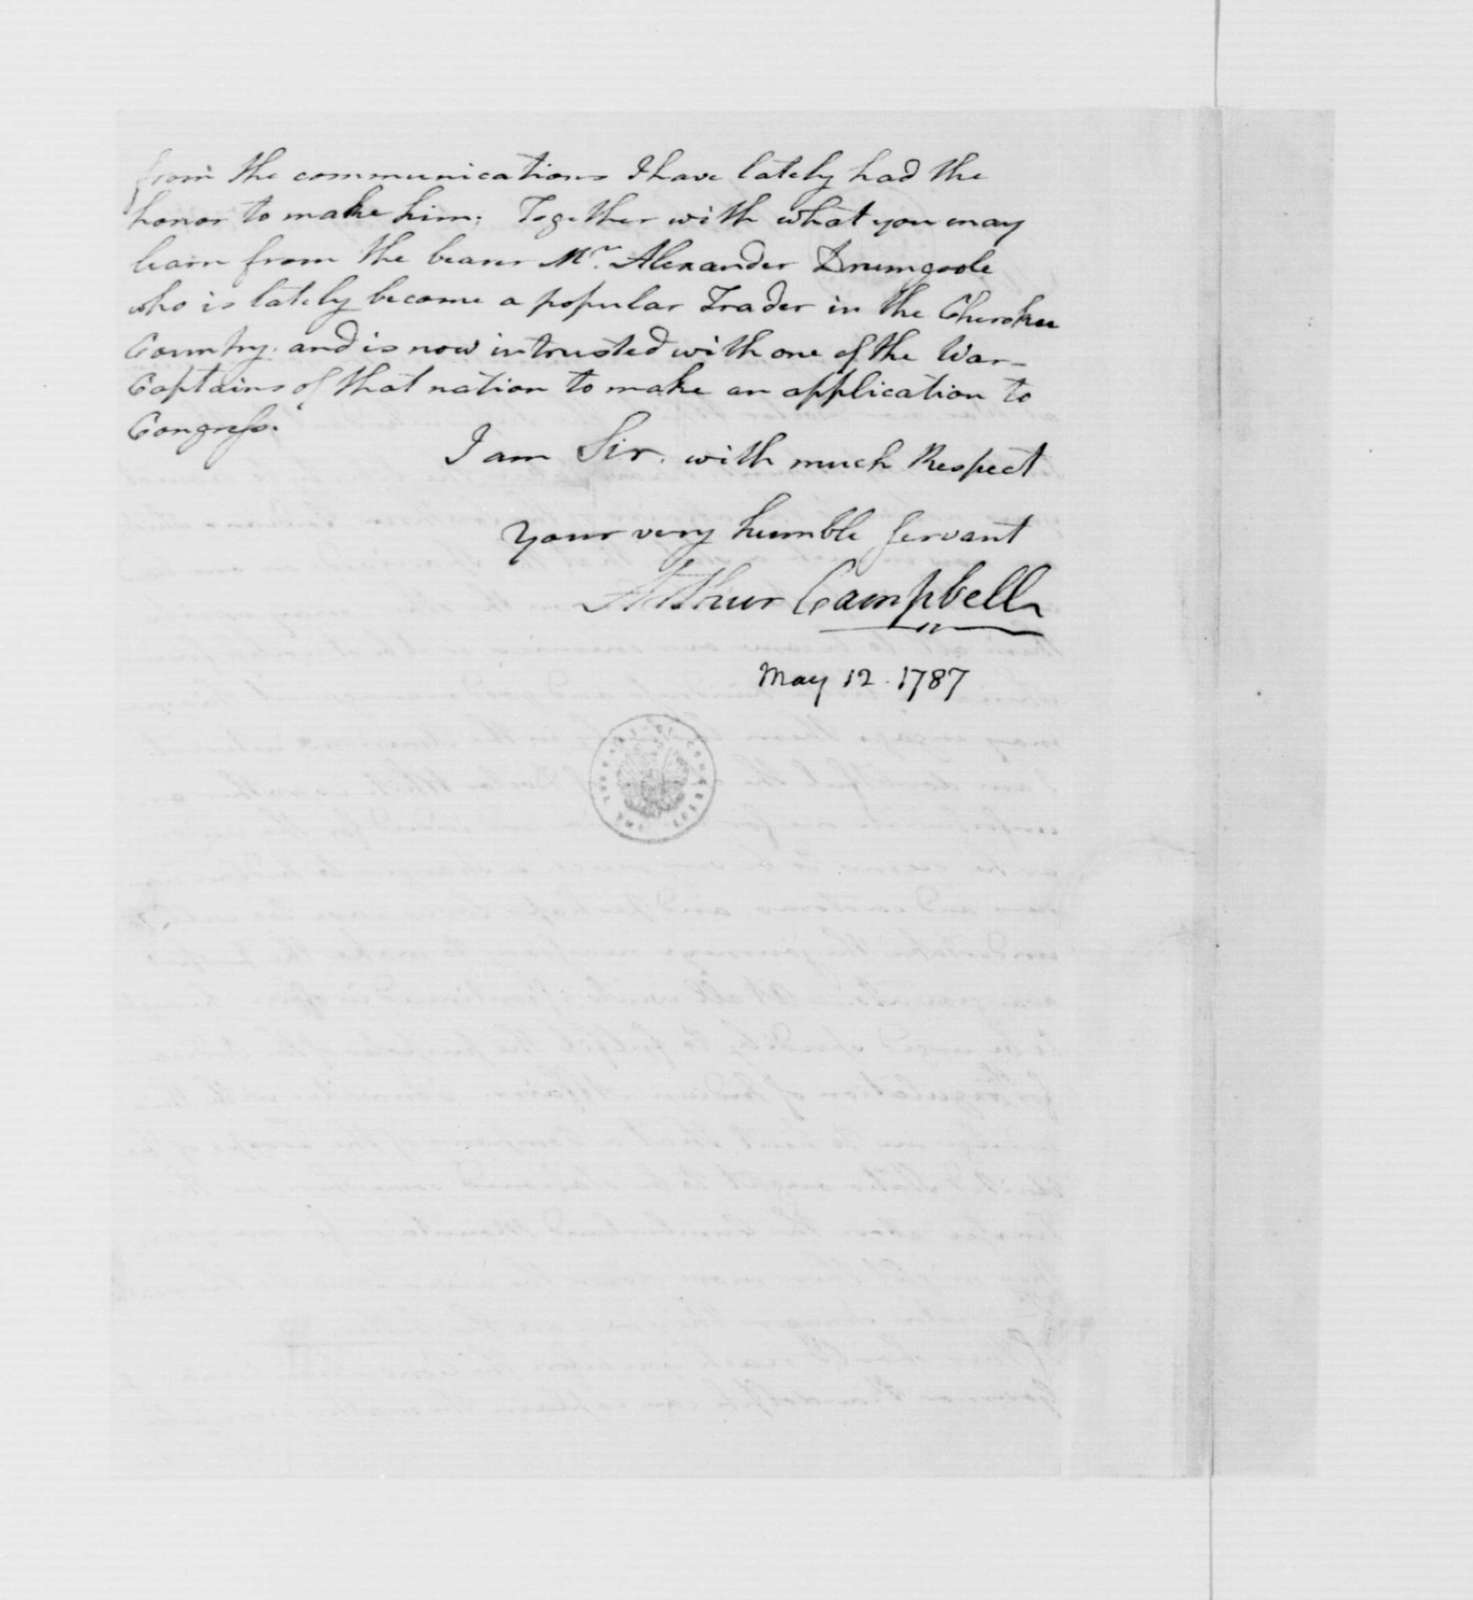 Arthur Campbell to James Madison, May 12, 1787.